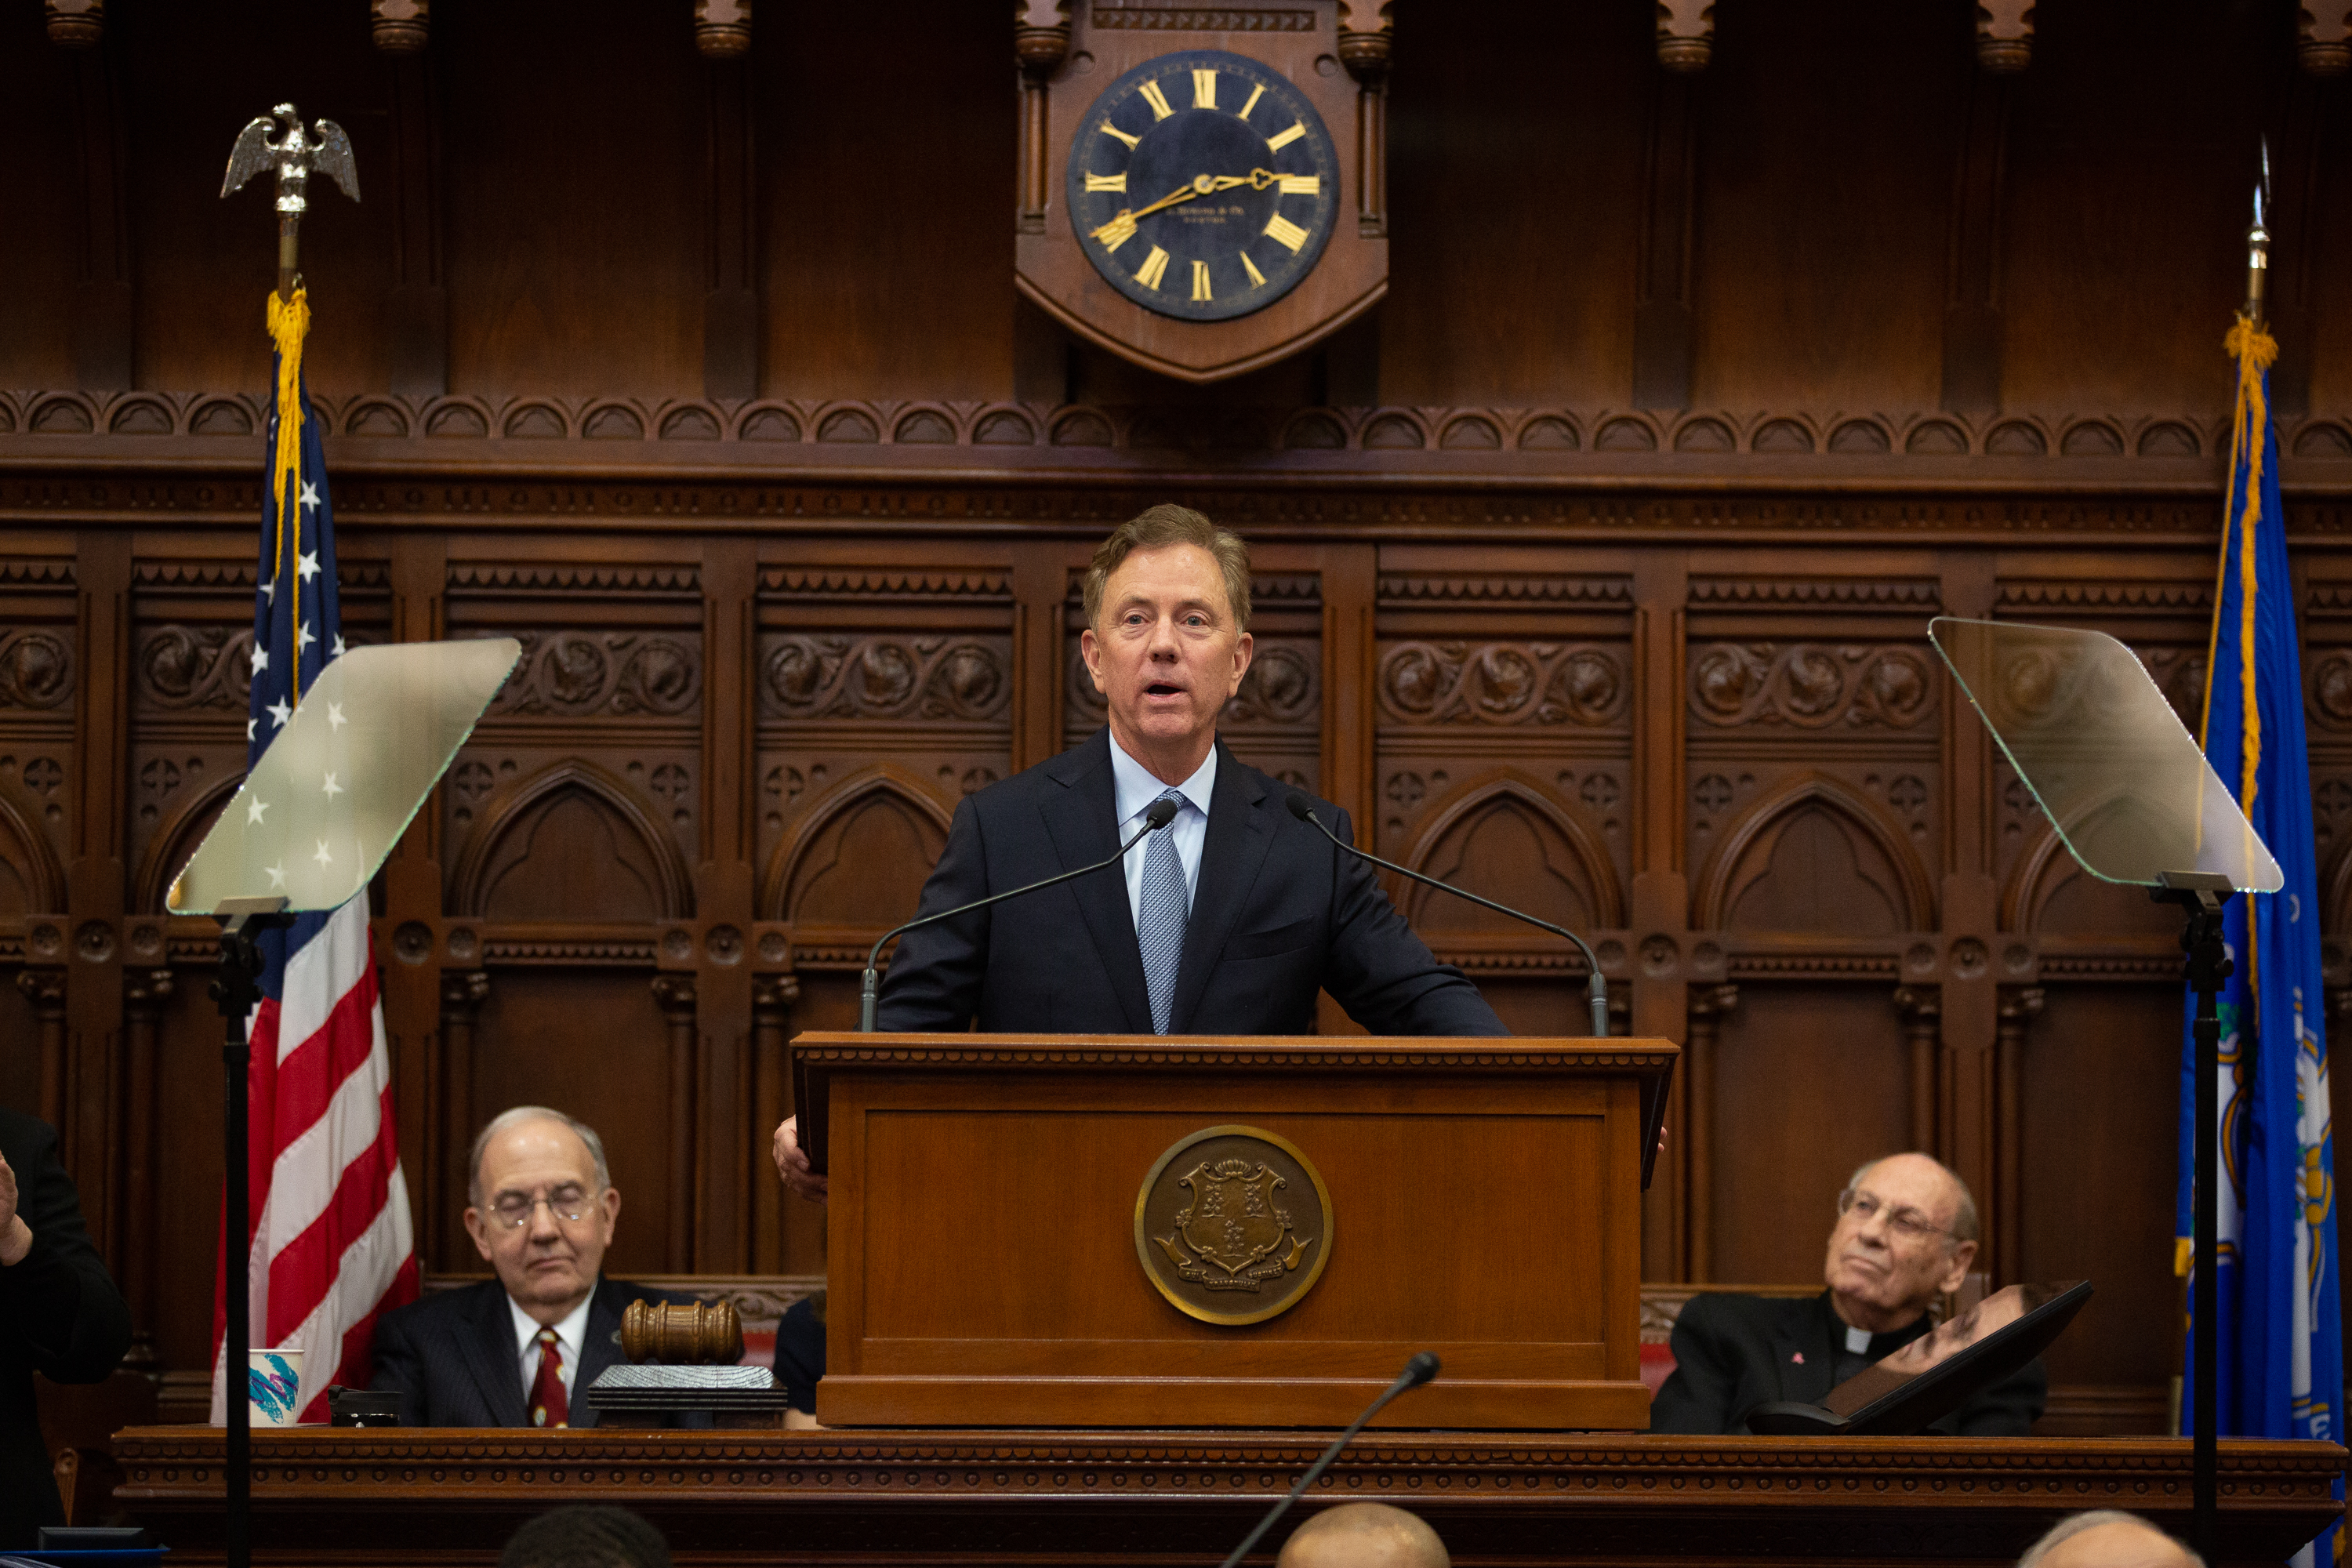 Lamont plants clues to his first budget in opening address